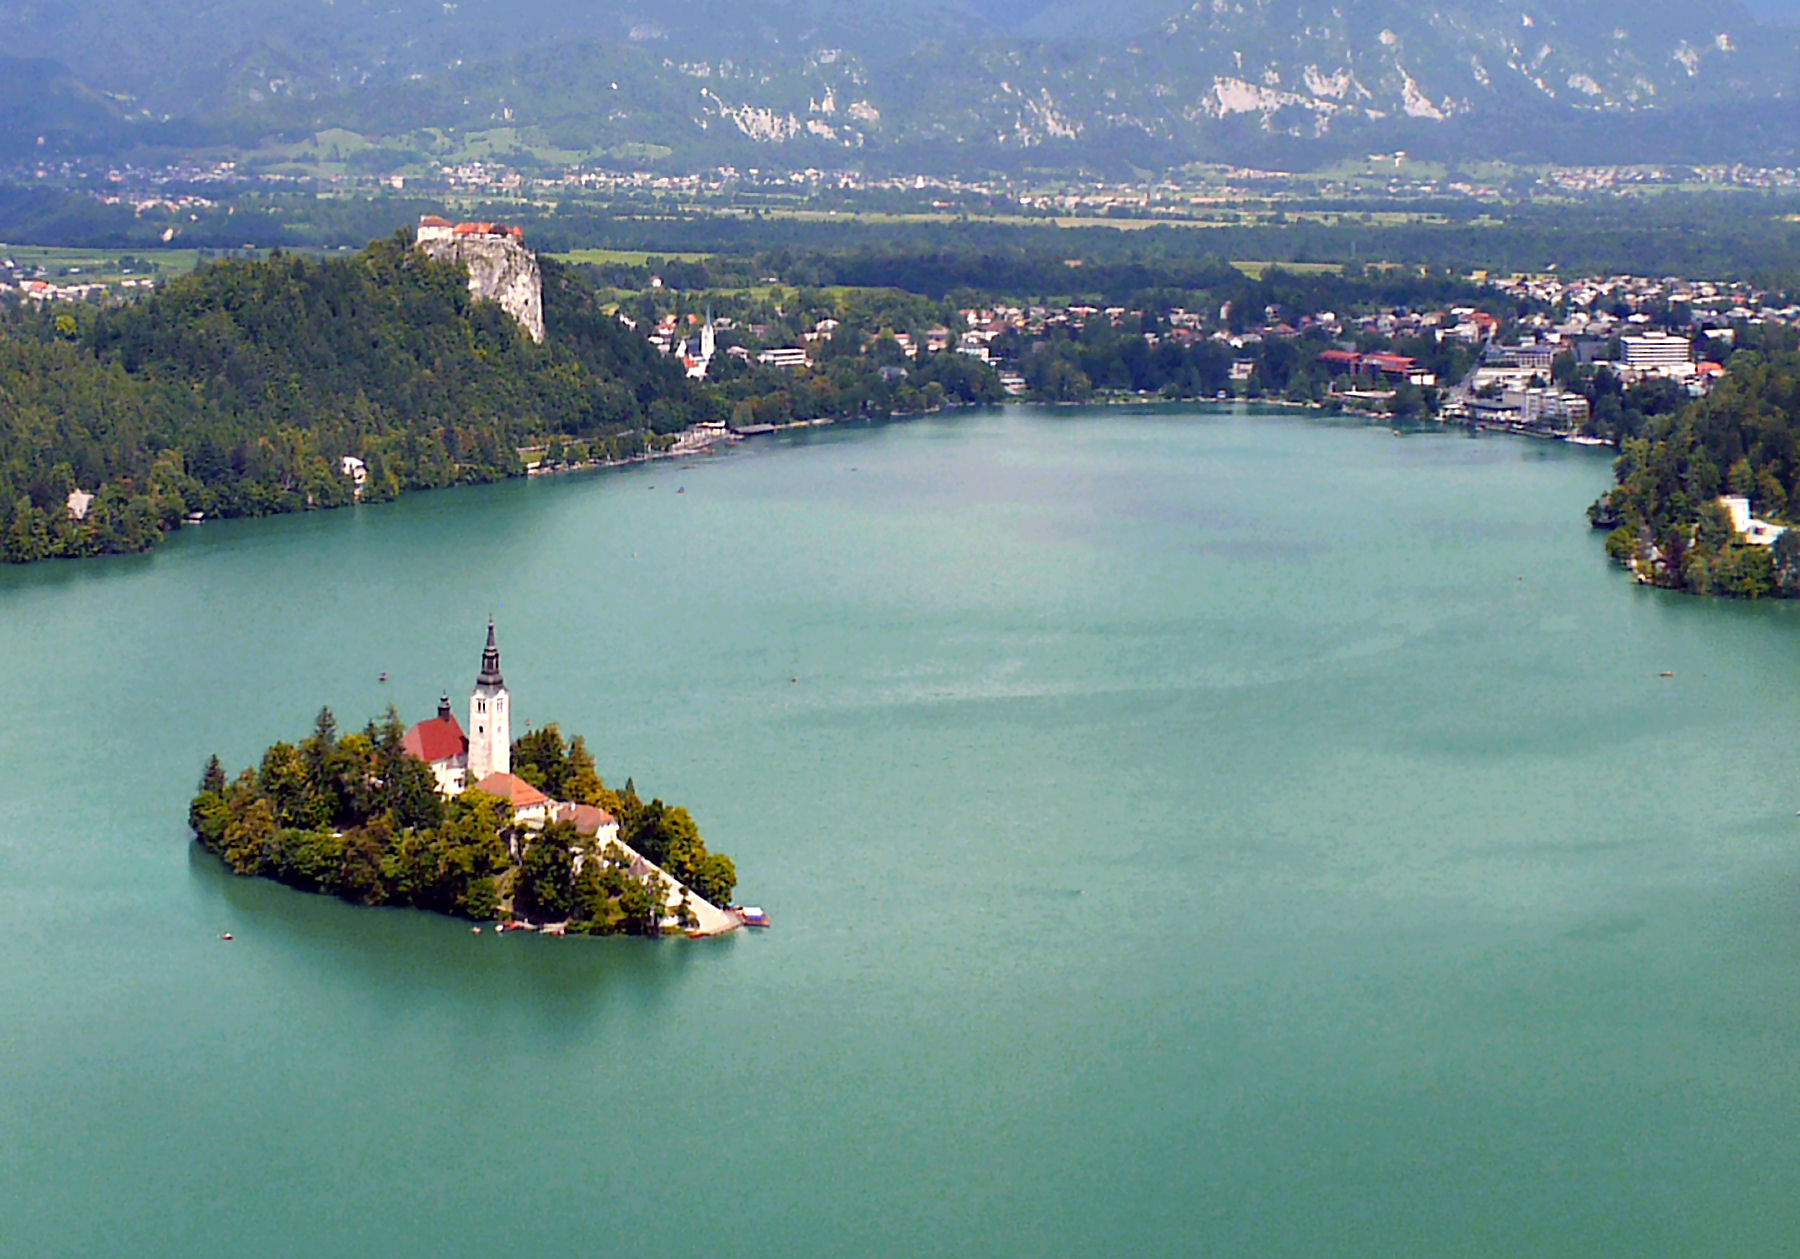 Lake Bled with an island and Bled castle